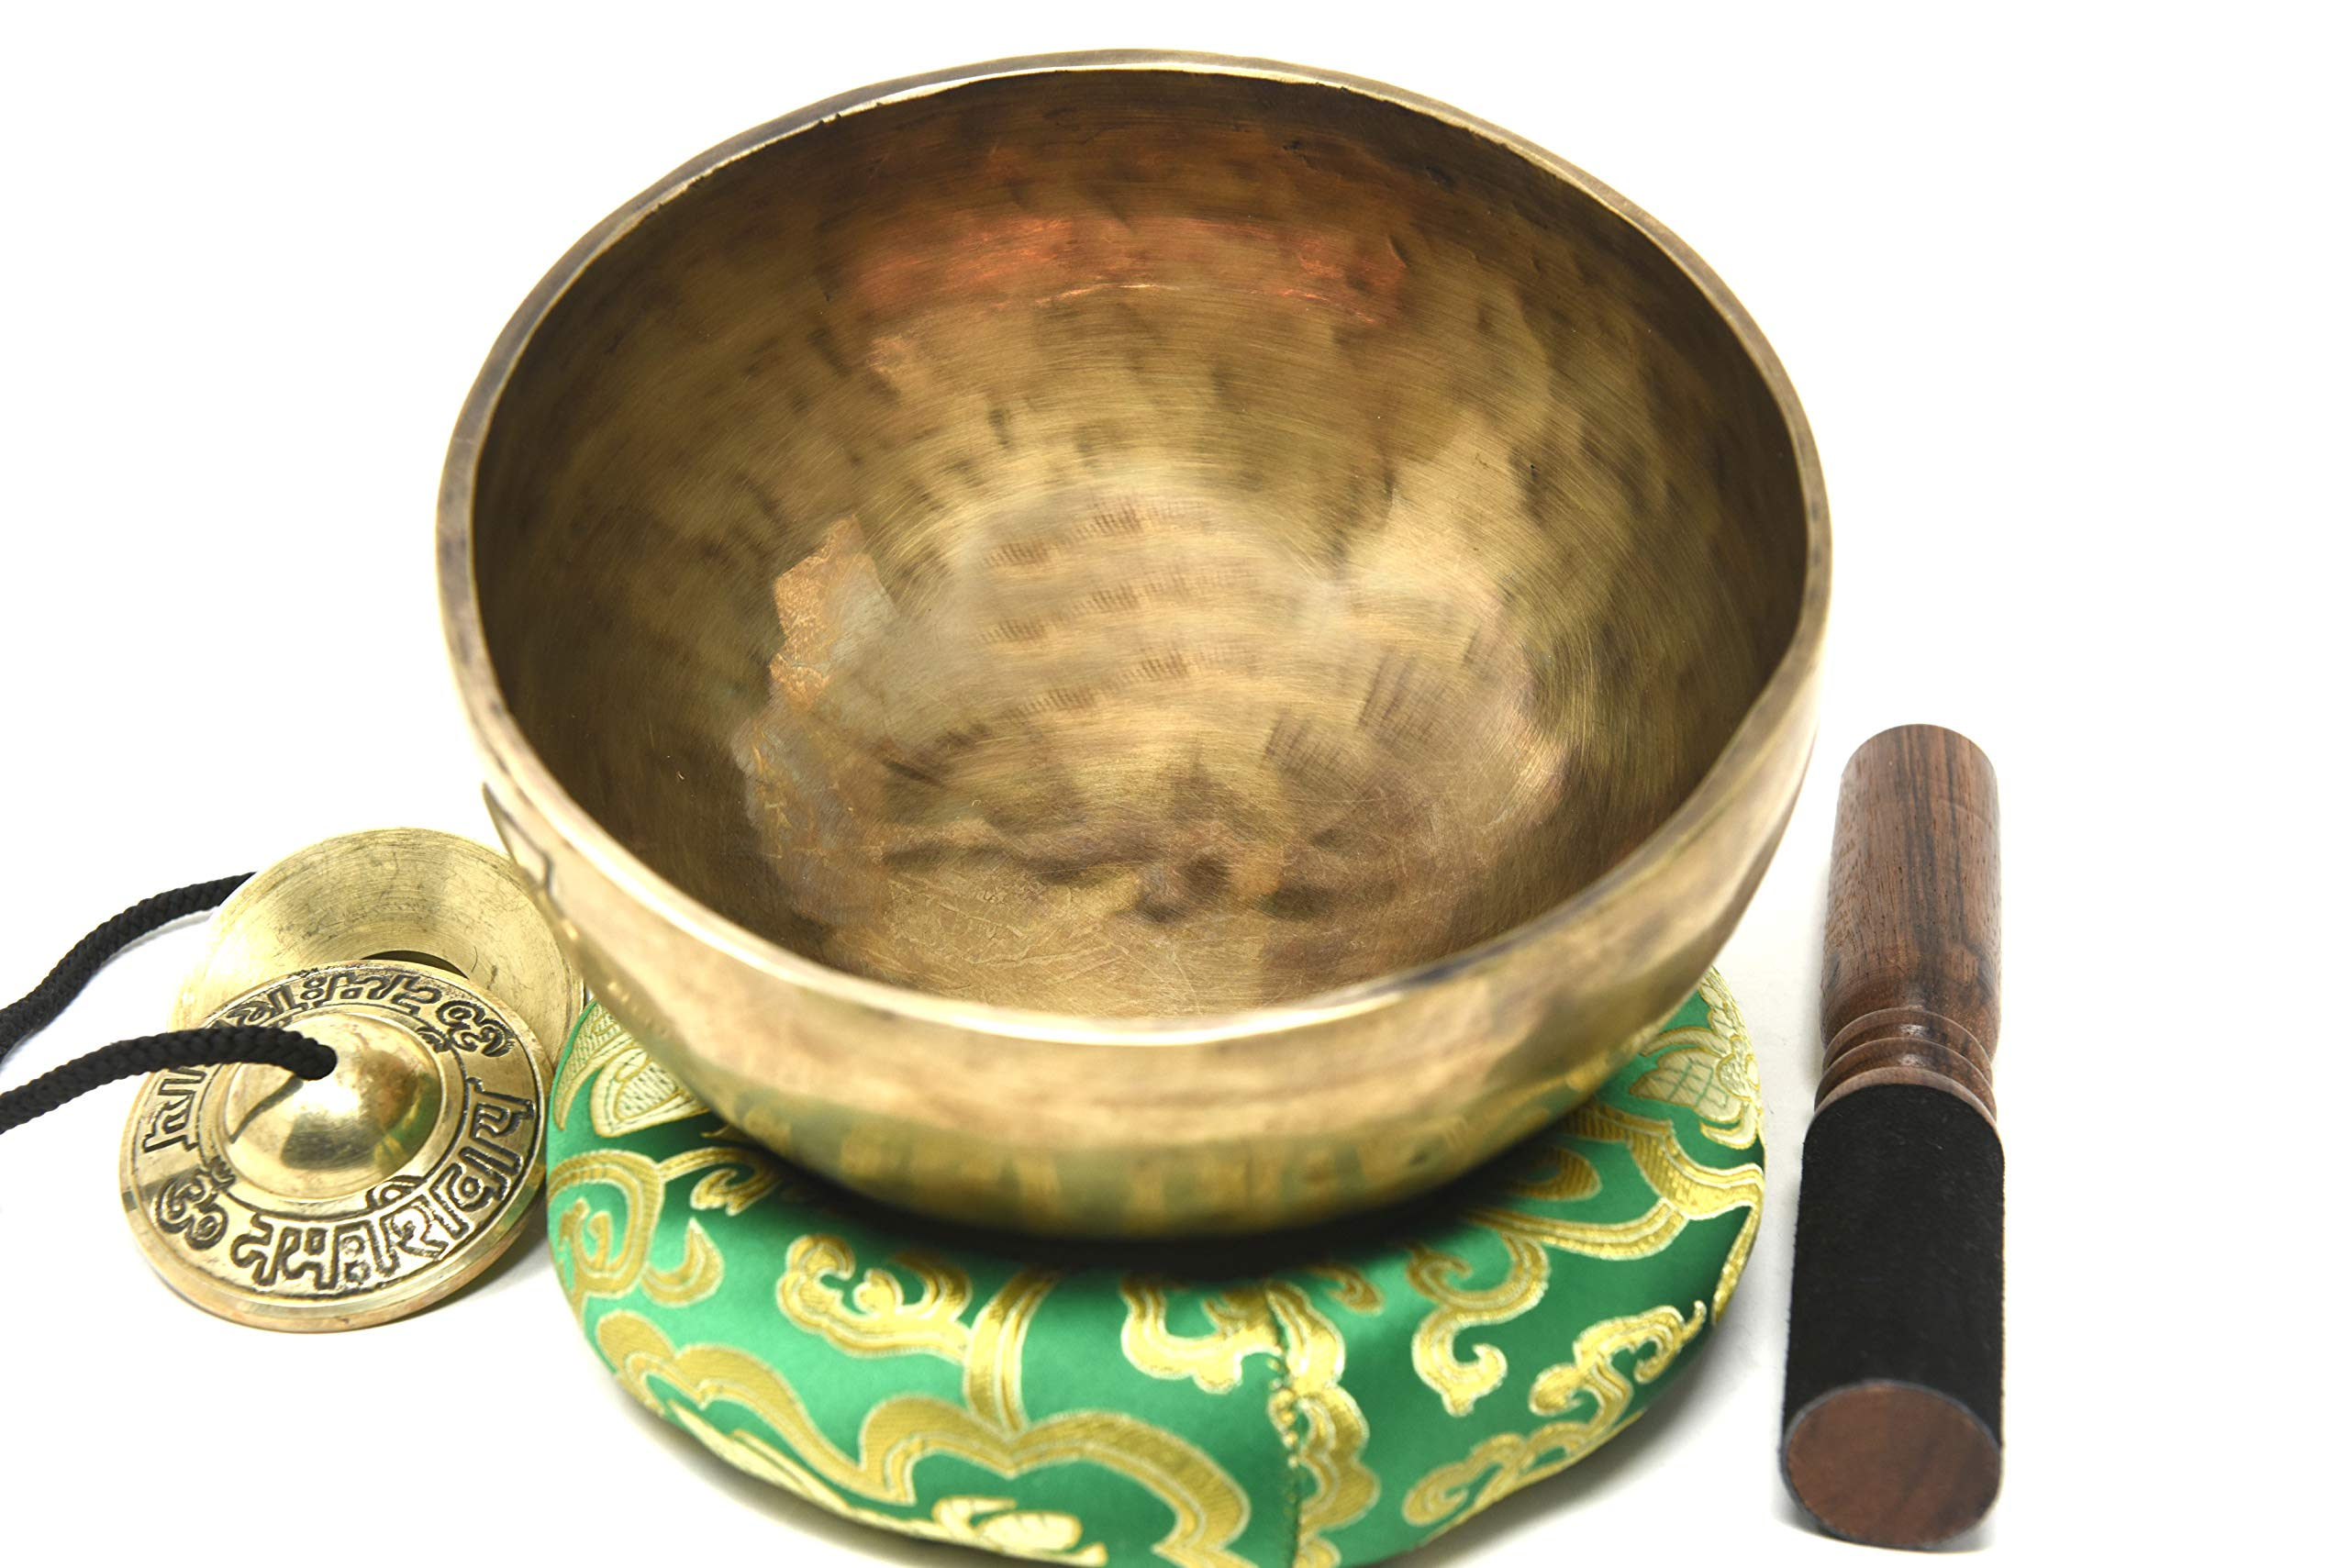 Root and Om Chakra C Note Anitque Hand Hammered Tibetan Meditation Singing Bowl 8 Inches - Yoga Old Bowl By Thamelmart by TM THAMELMART FOR BEAUTIFUL MINDS